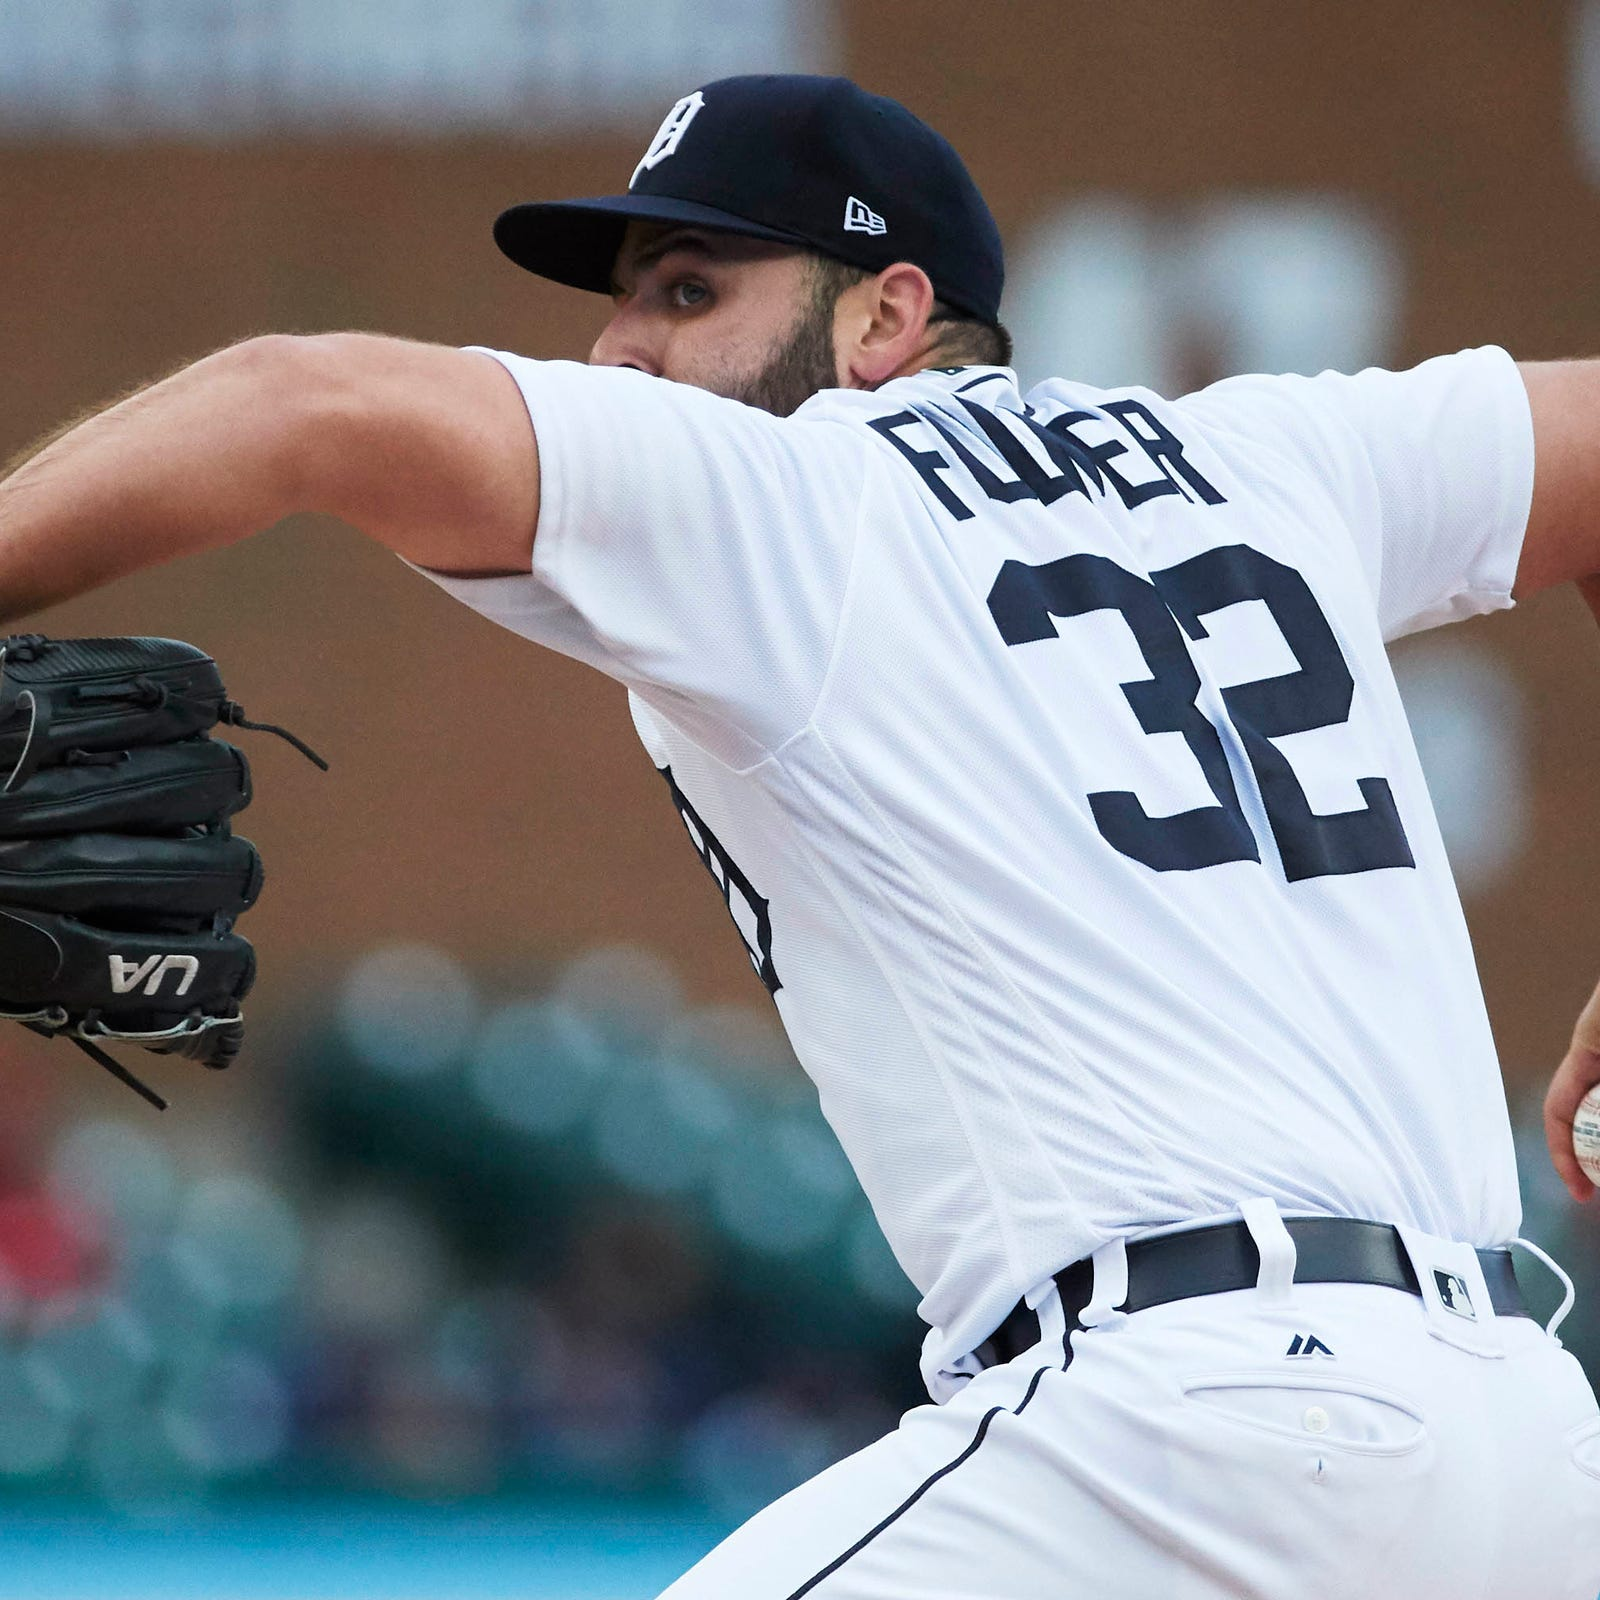 Detroit Tigers lose to St. Louis Cardinals, 5-2